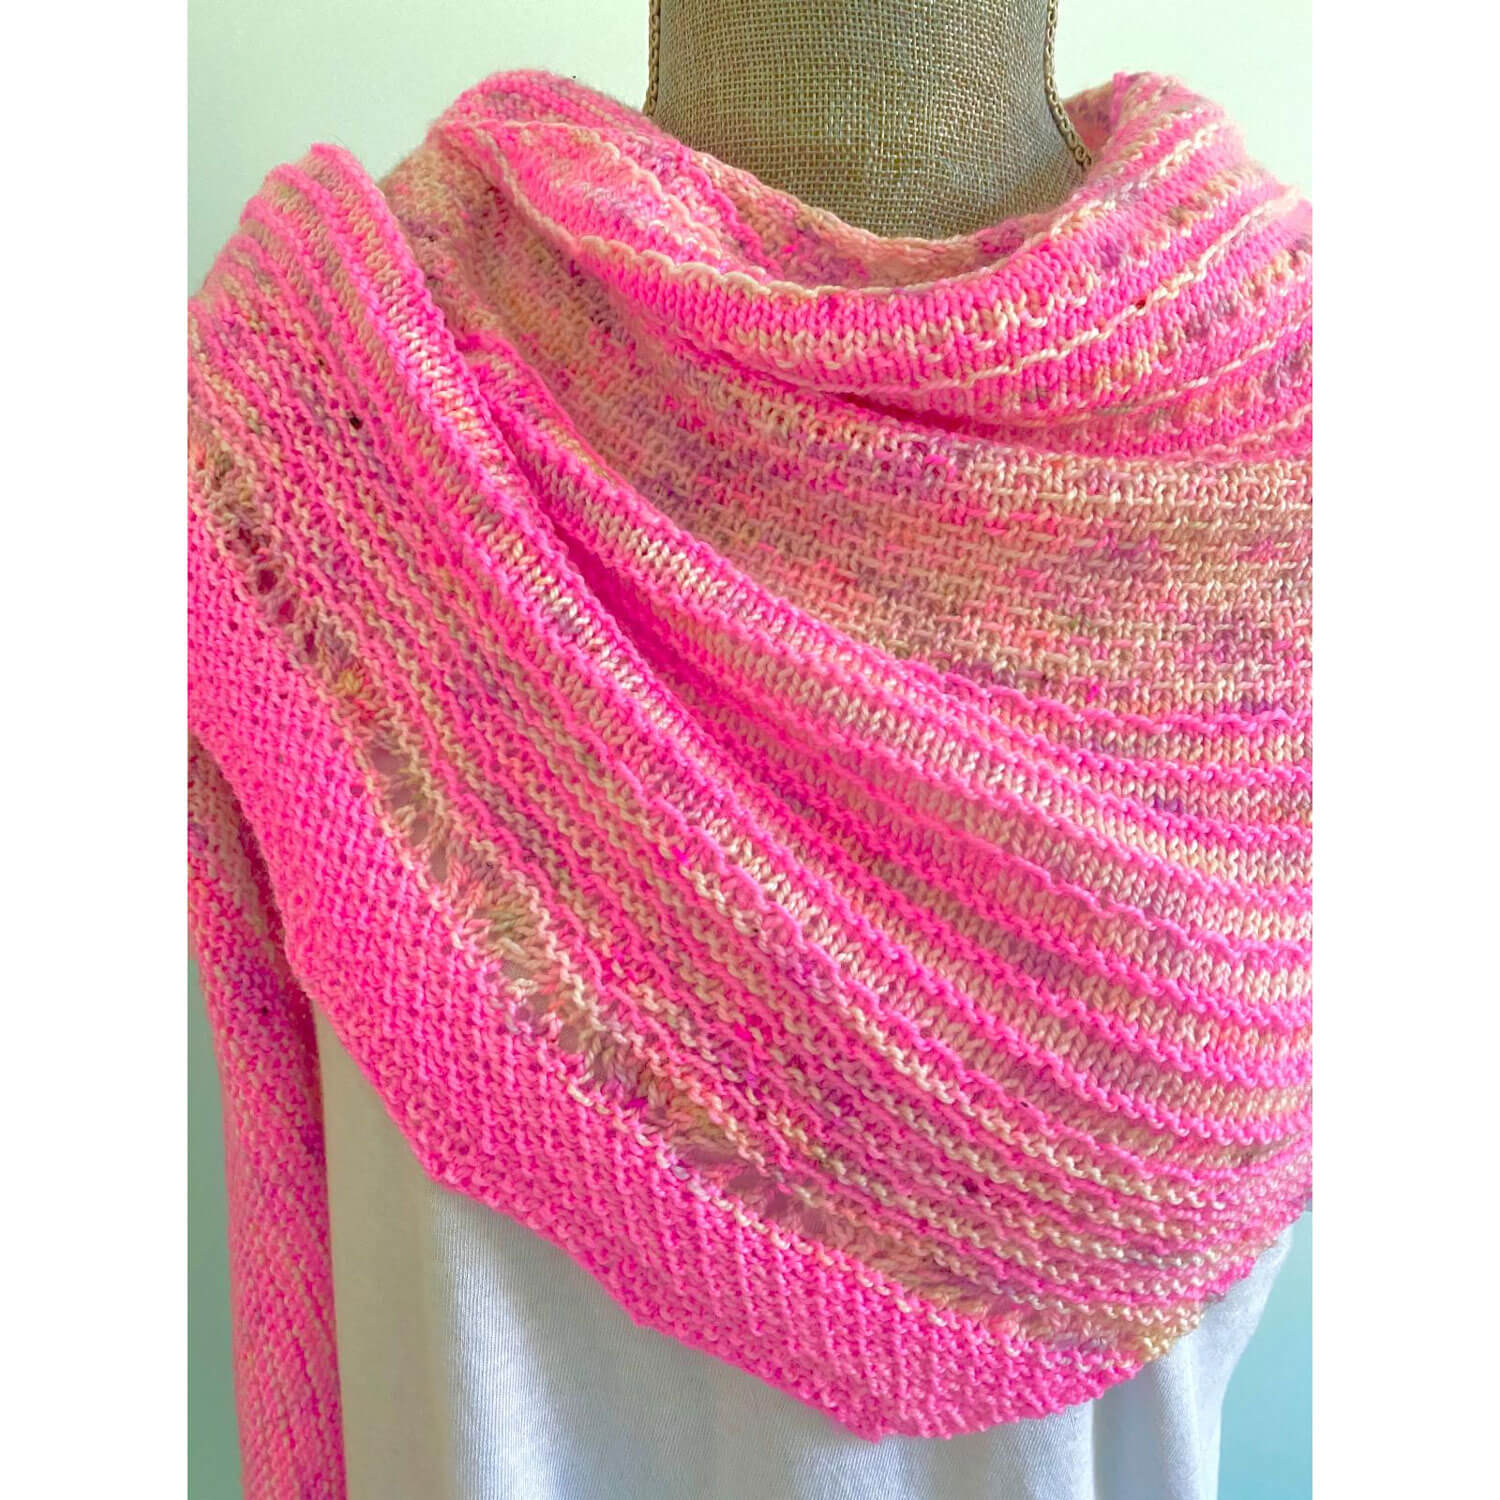 Hug Shot Shawl Kit - Casapinka Pattern - Emma's Yarn Super Silky WITH FREE PATTERN | Yarn Worx